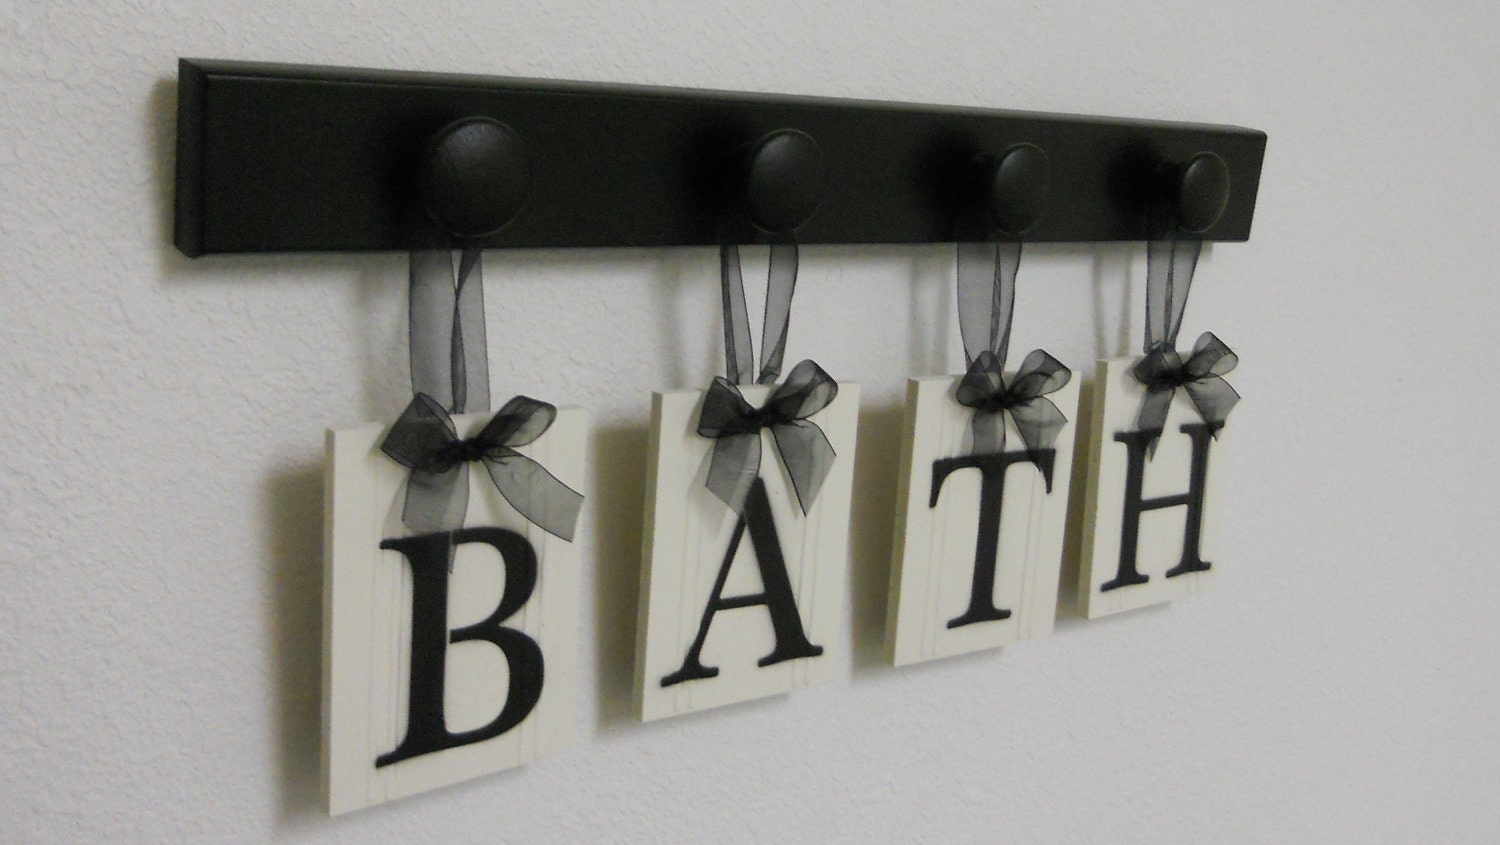 Bath Sign Personalized Handmade Hanging Letters Set Includes Wooden Hooks And Letters Painted Black Restroom